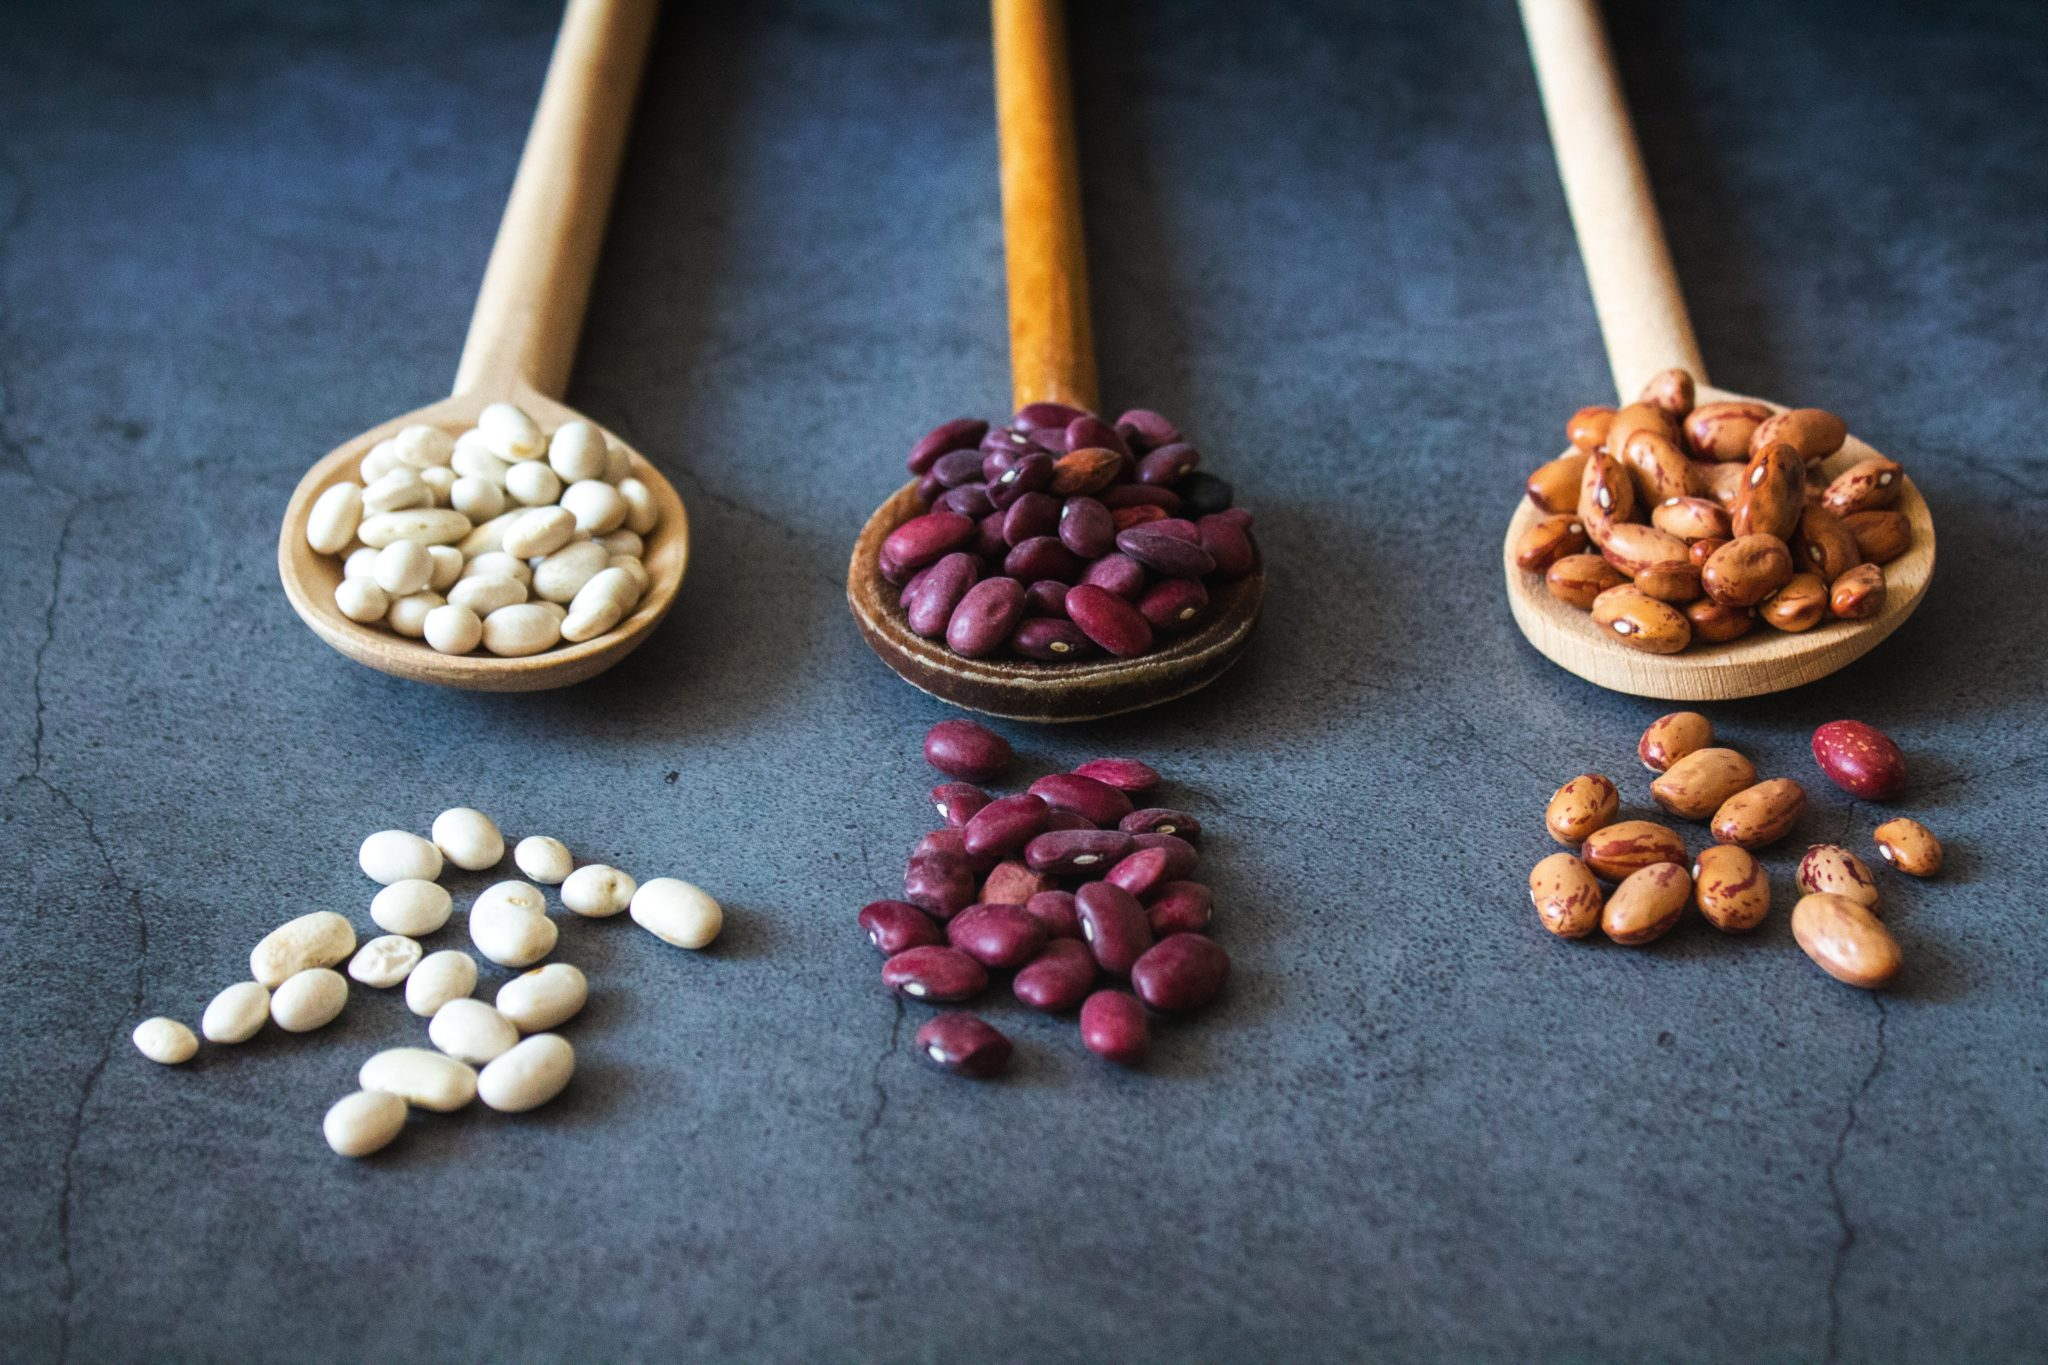 image of dried beans on wooden spoons to represent plant based protein foods that may assist with fertility